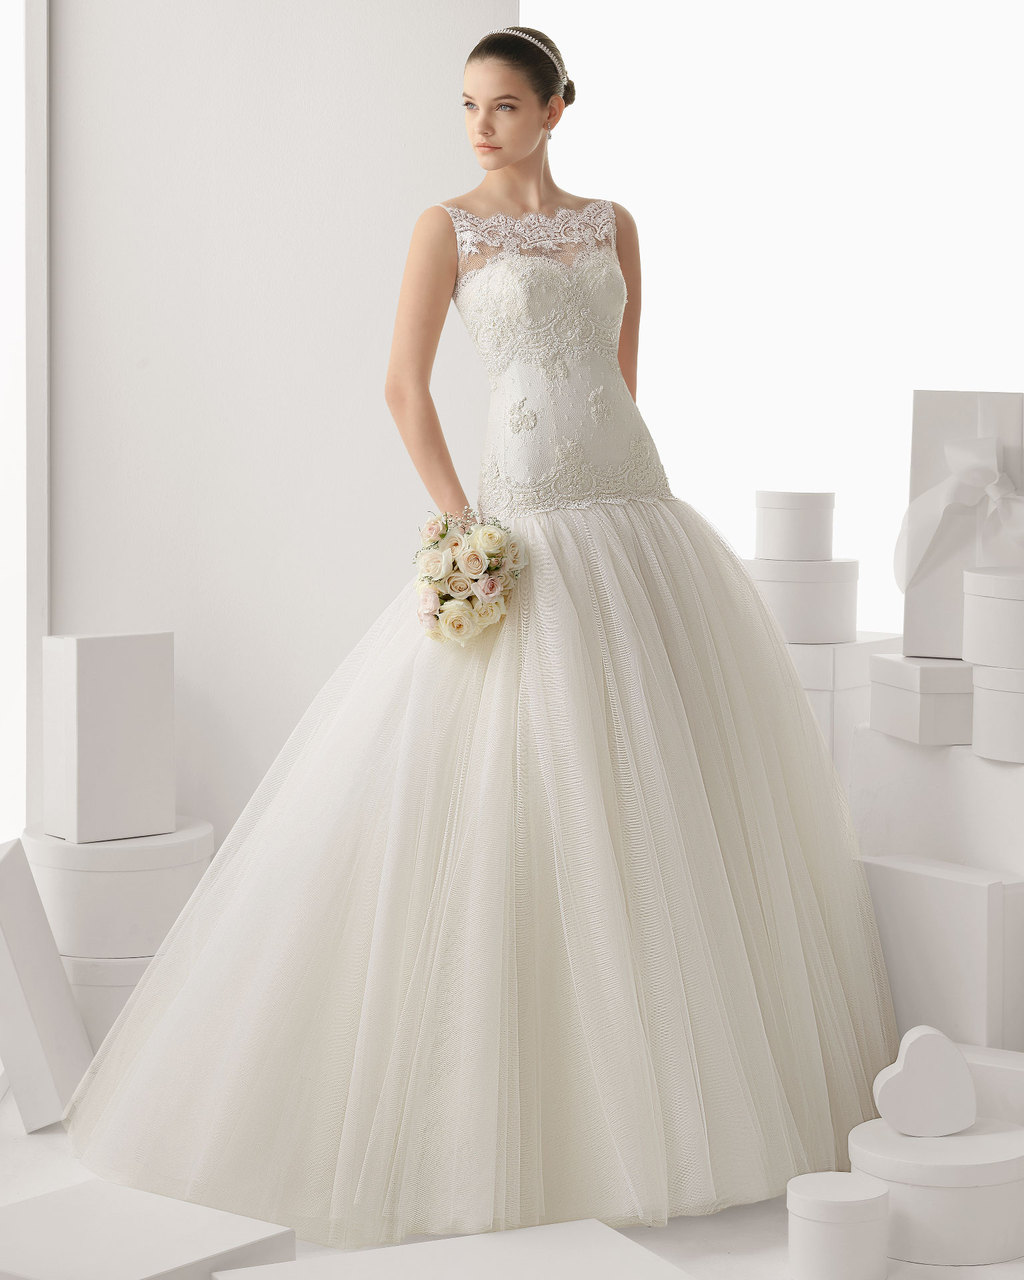 Rosa-clara-wedding-dress-2014-bridal-calella.full